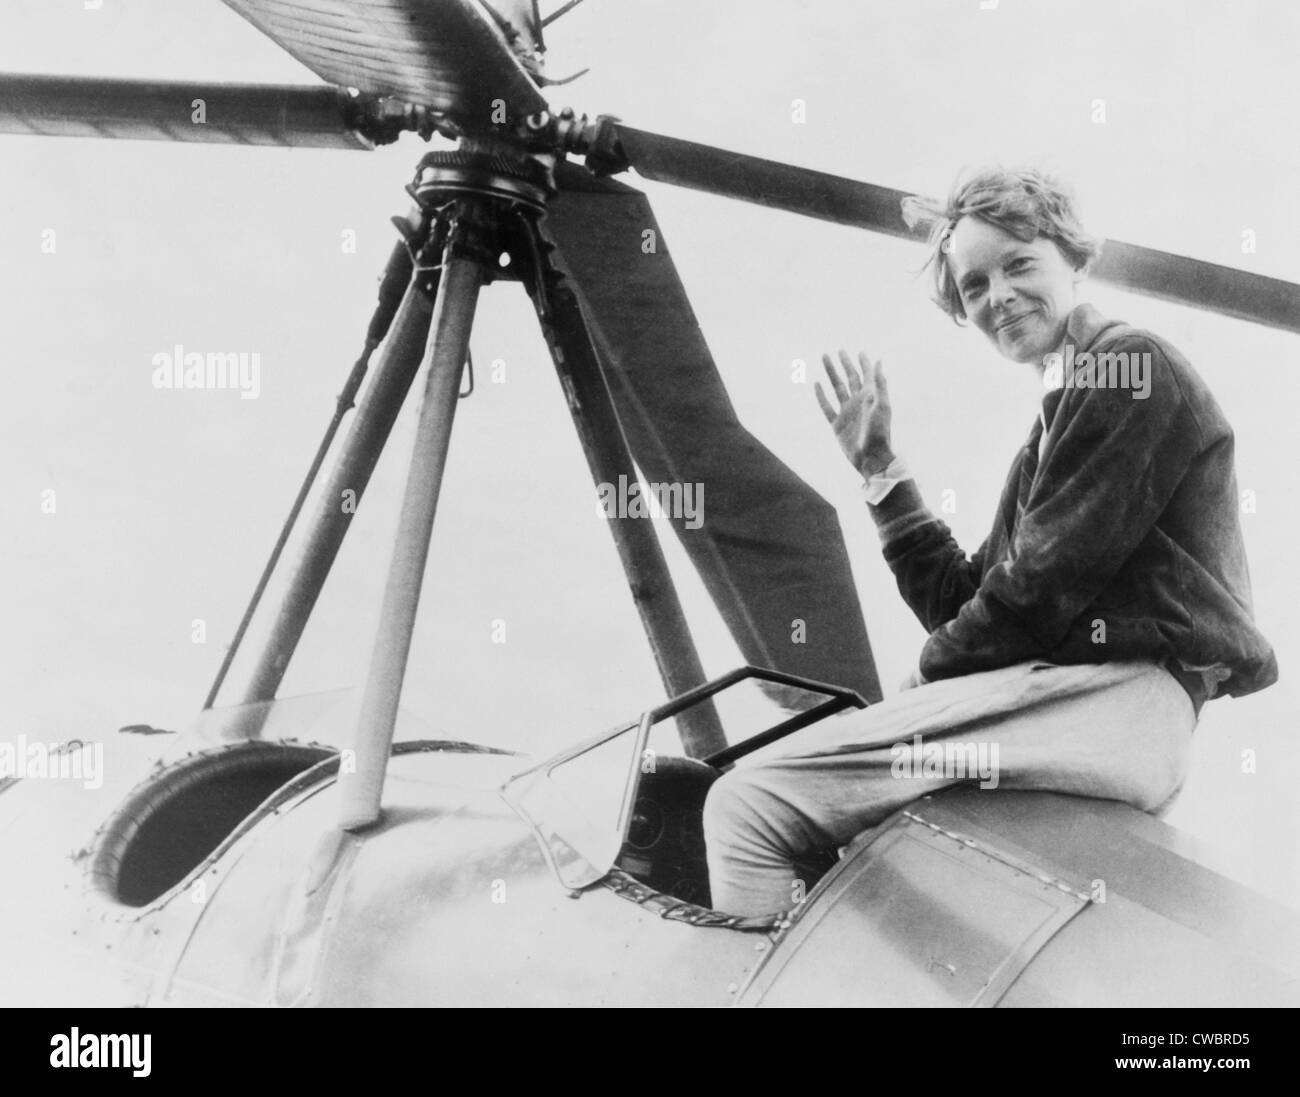 Amelia Earhart (1897-1937), waving, seated outside cockpit on top of an Autogiro, in Los Angeles, shortly after Stock Photo